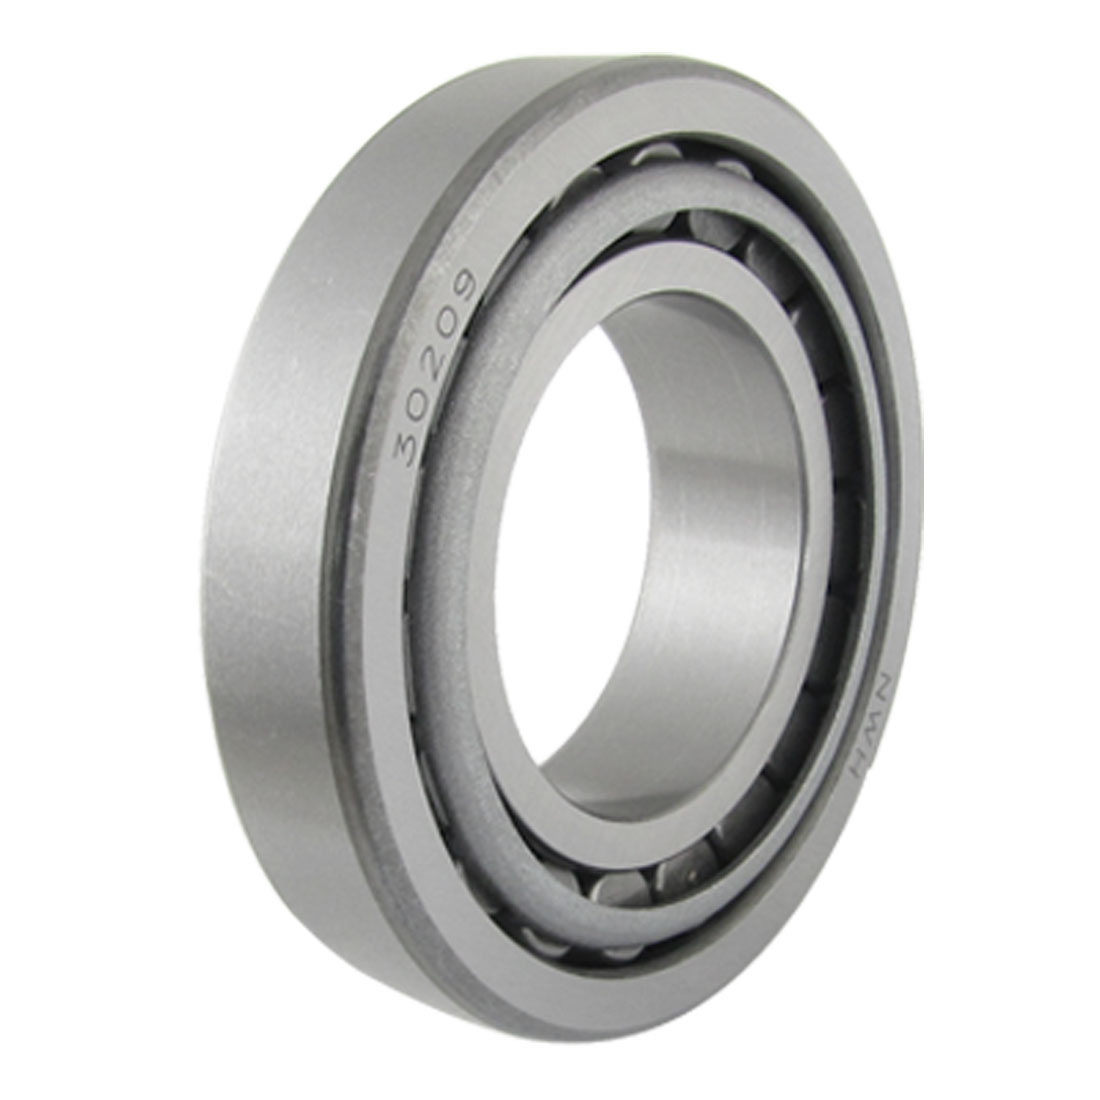 30209 Single Row 45mm x 85mm x 21mm Taper Tapered Roller Bearing